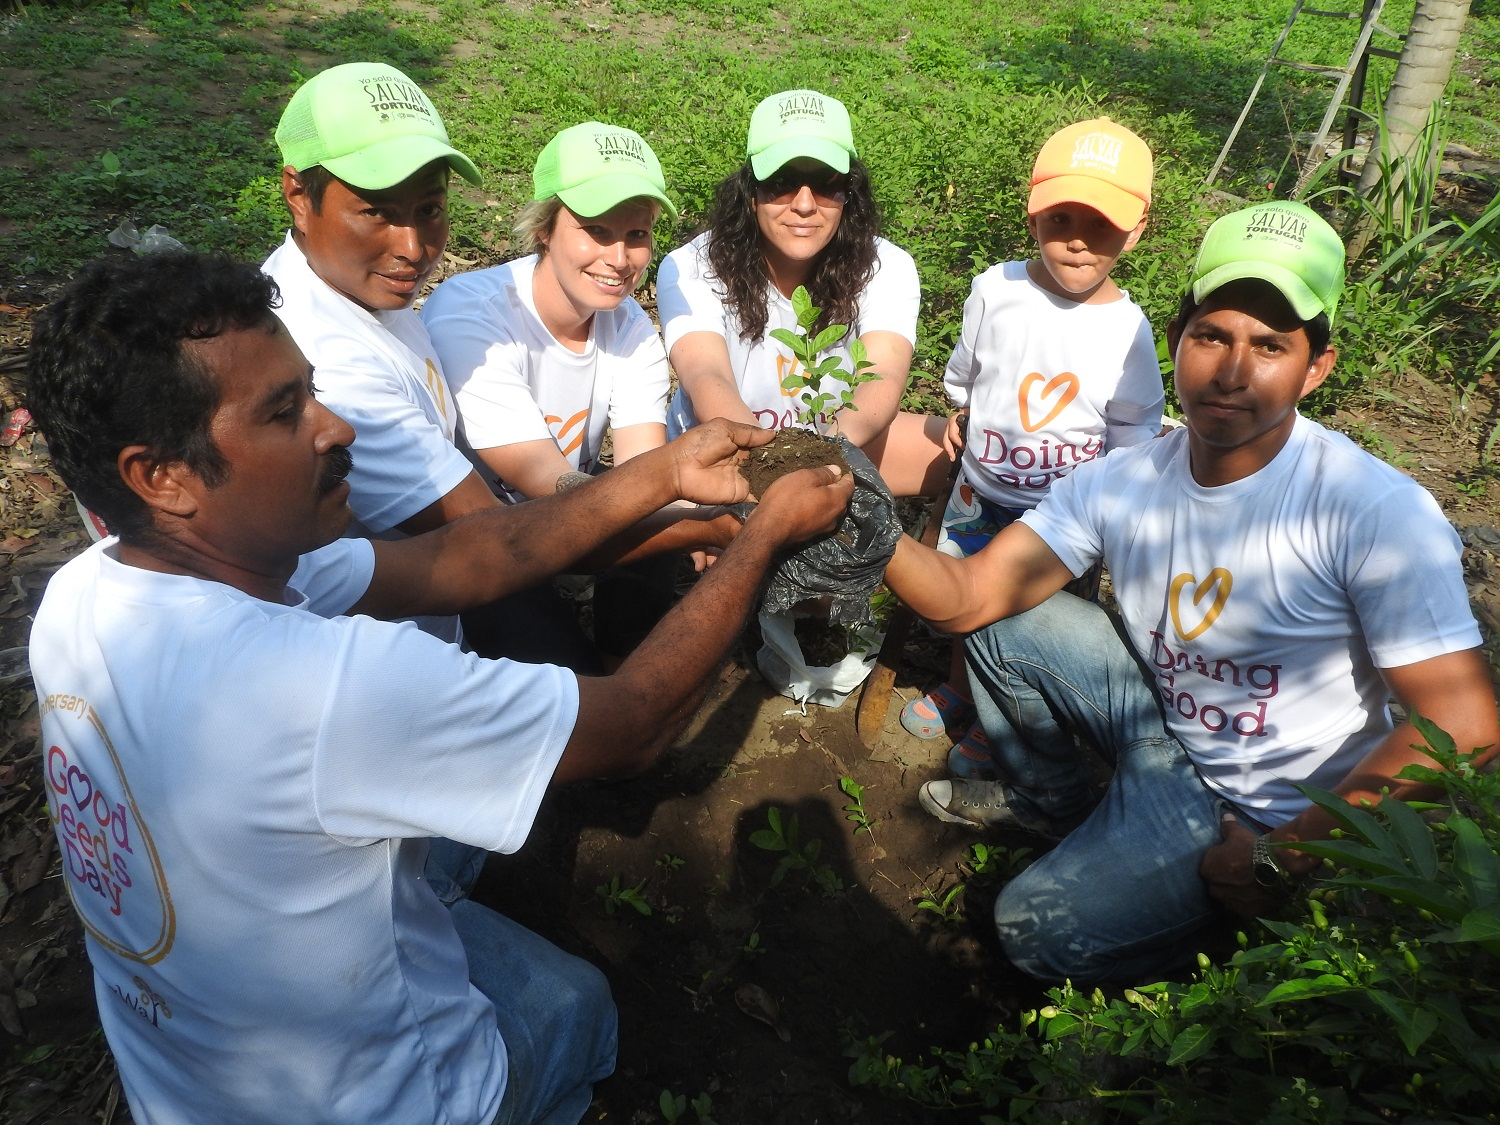 The Yepez Foundation builds bonds and plants trees for a local community garden.